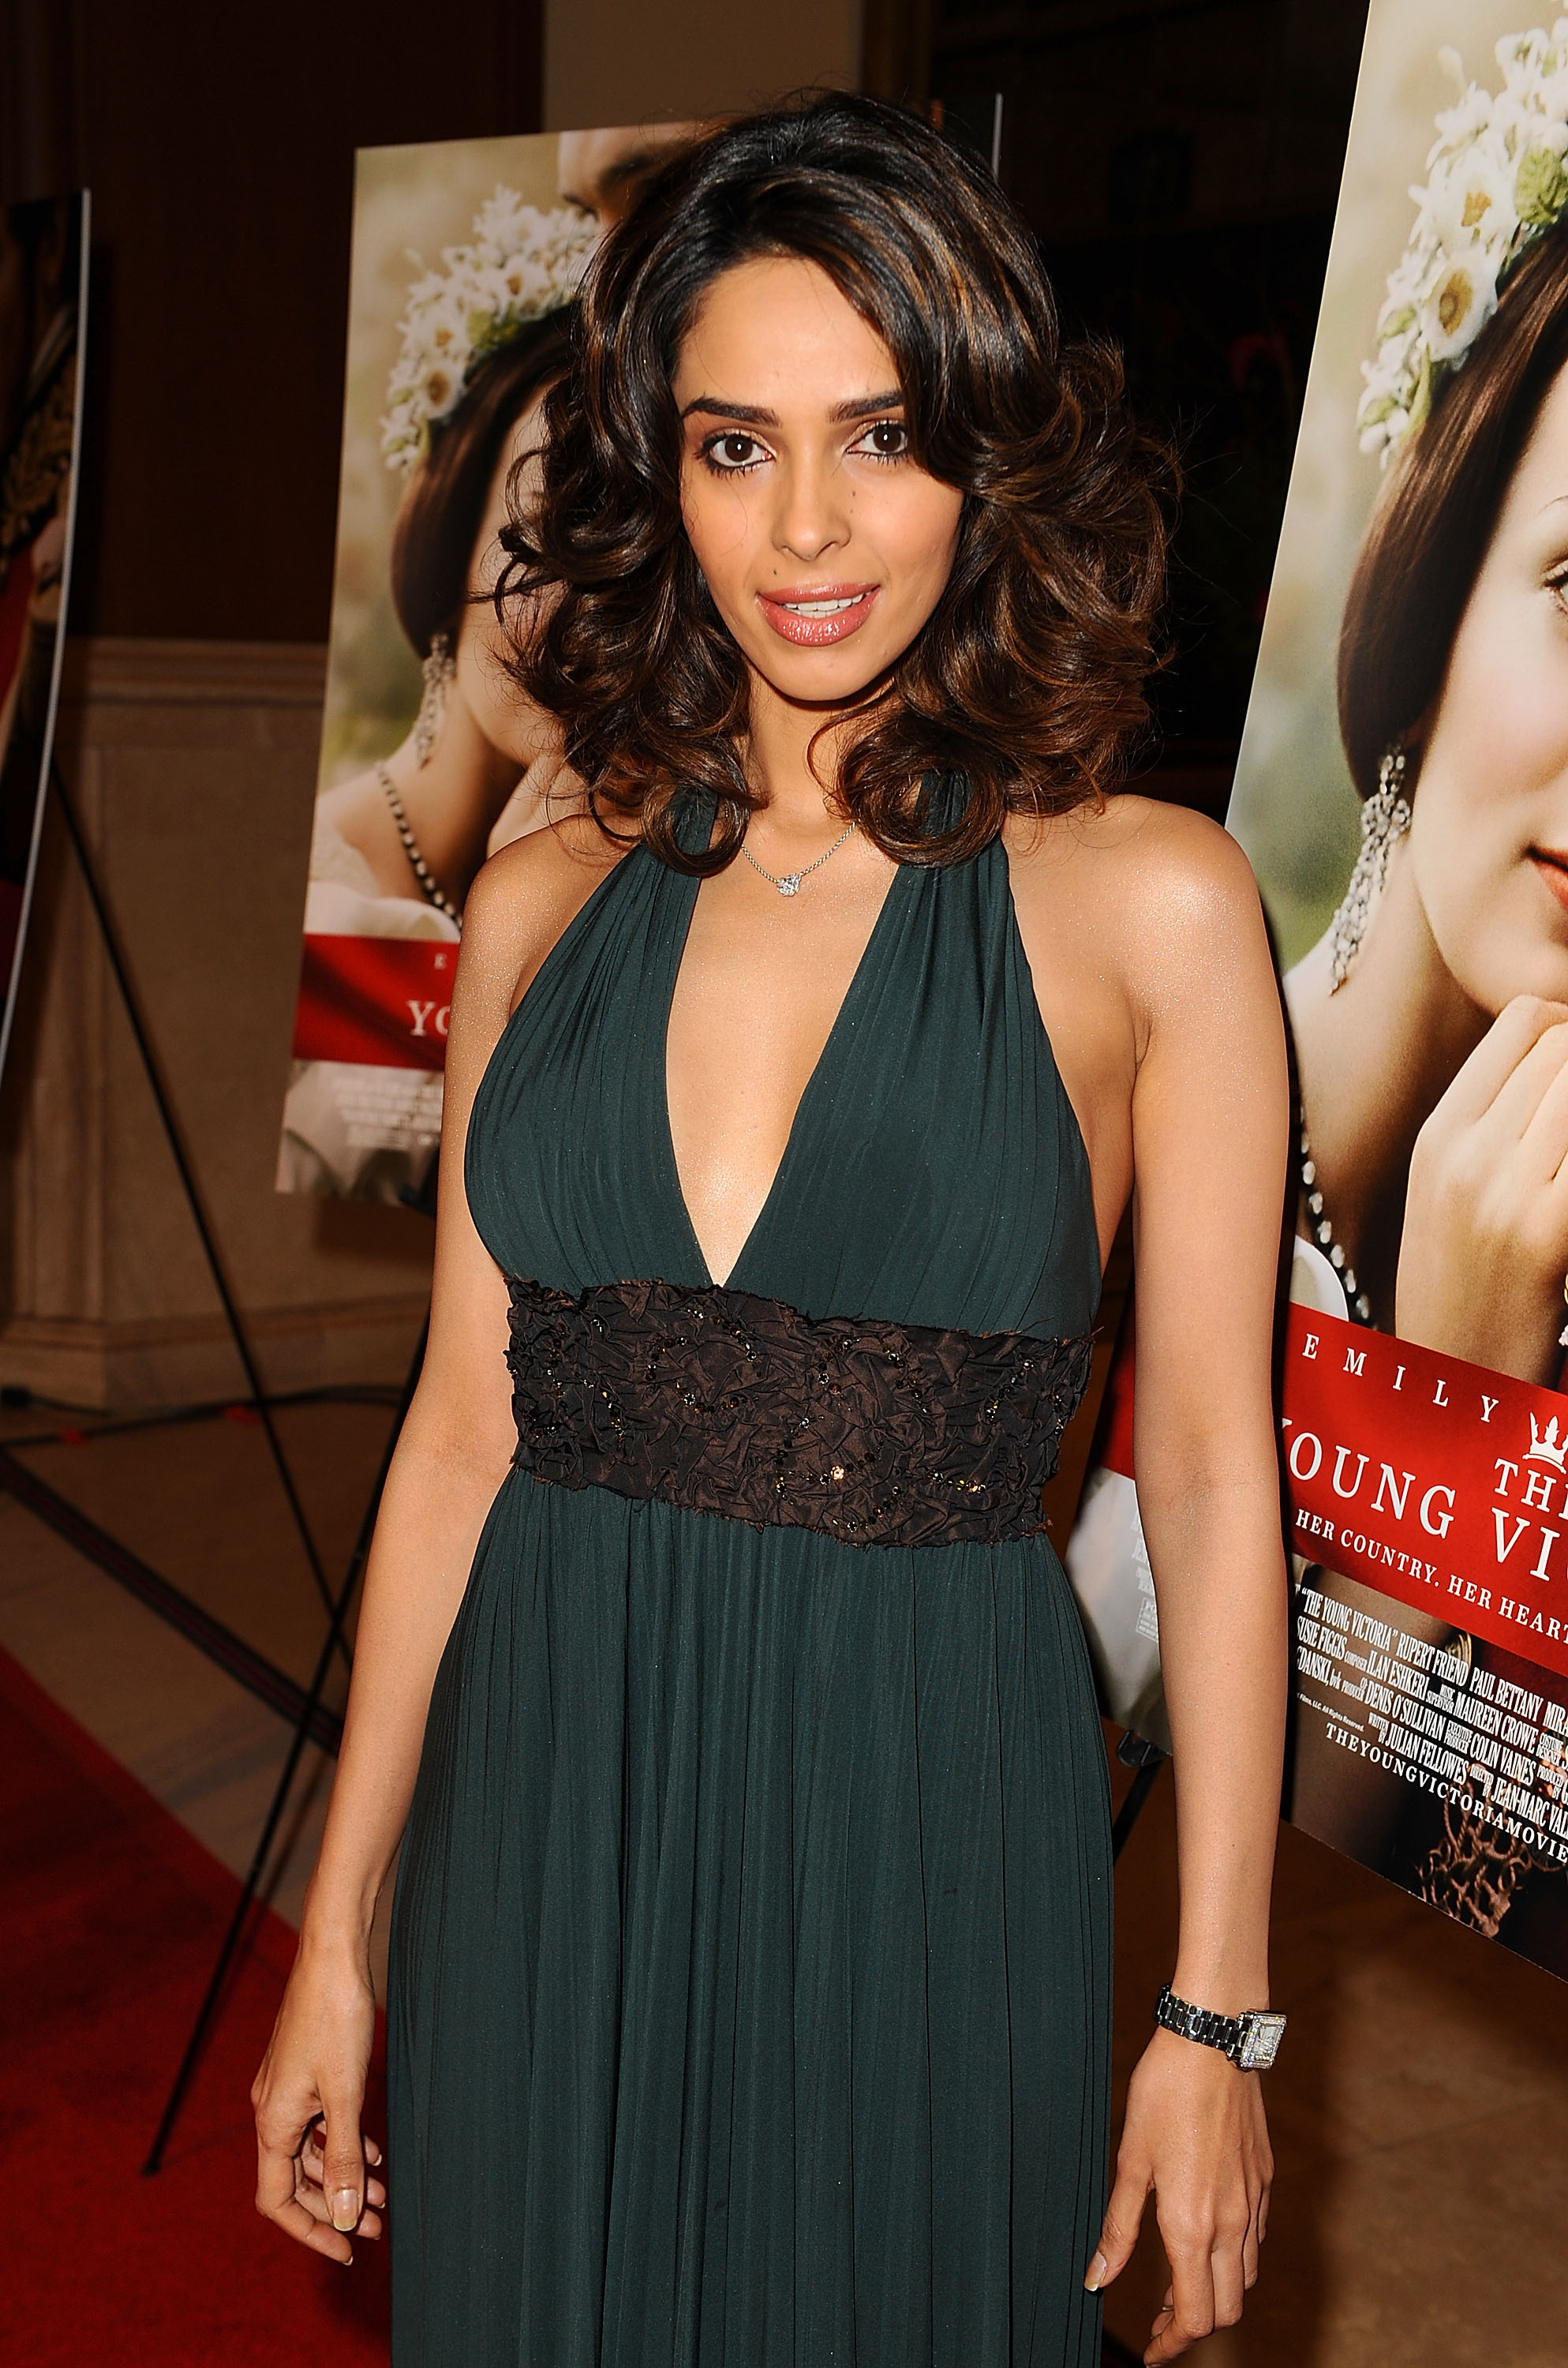 mallika sherawat photo 16 of 37 pics, wallpaper - photo #321580